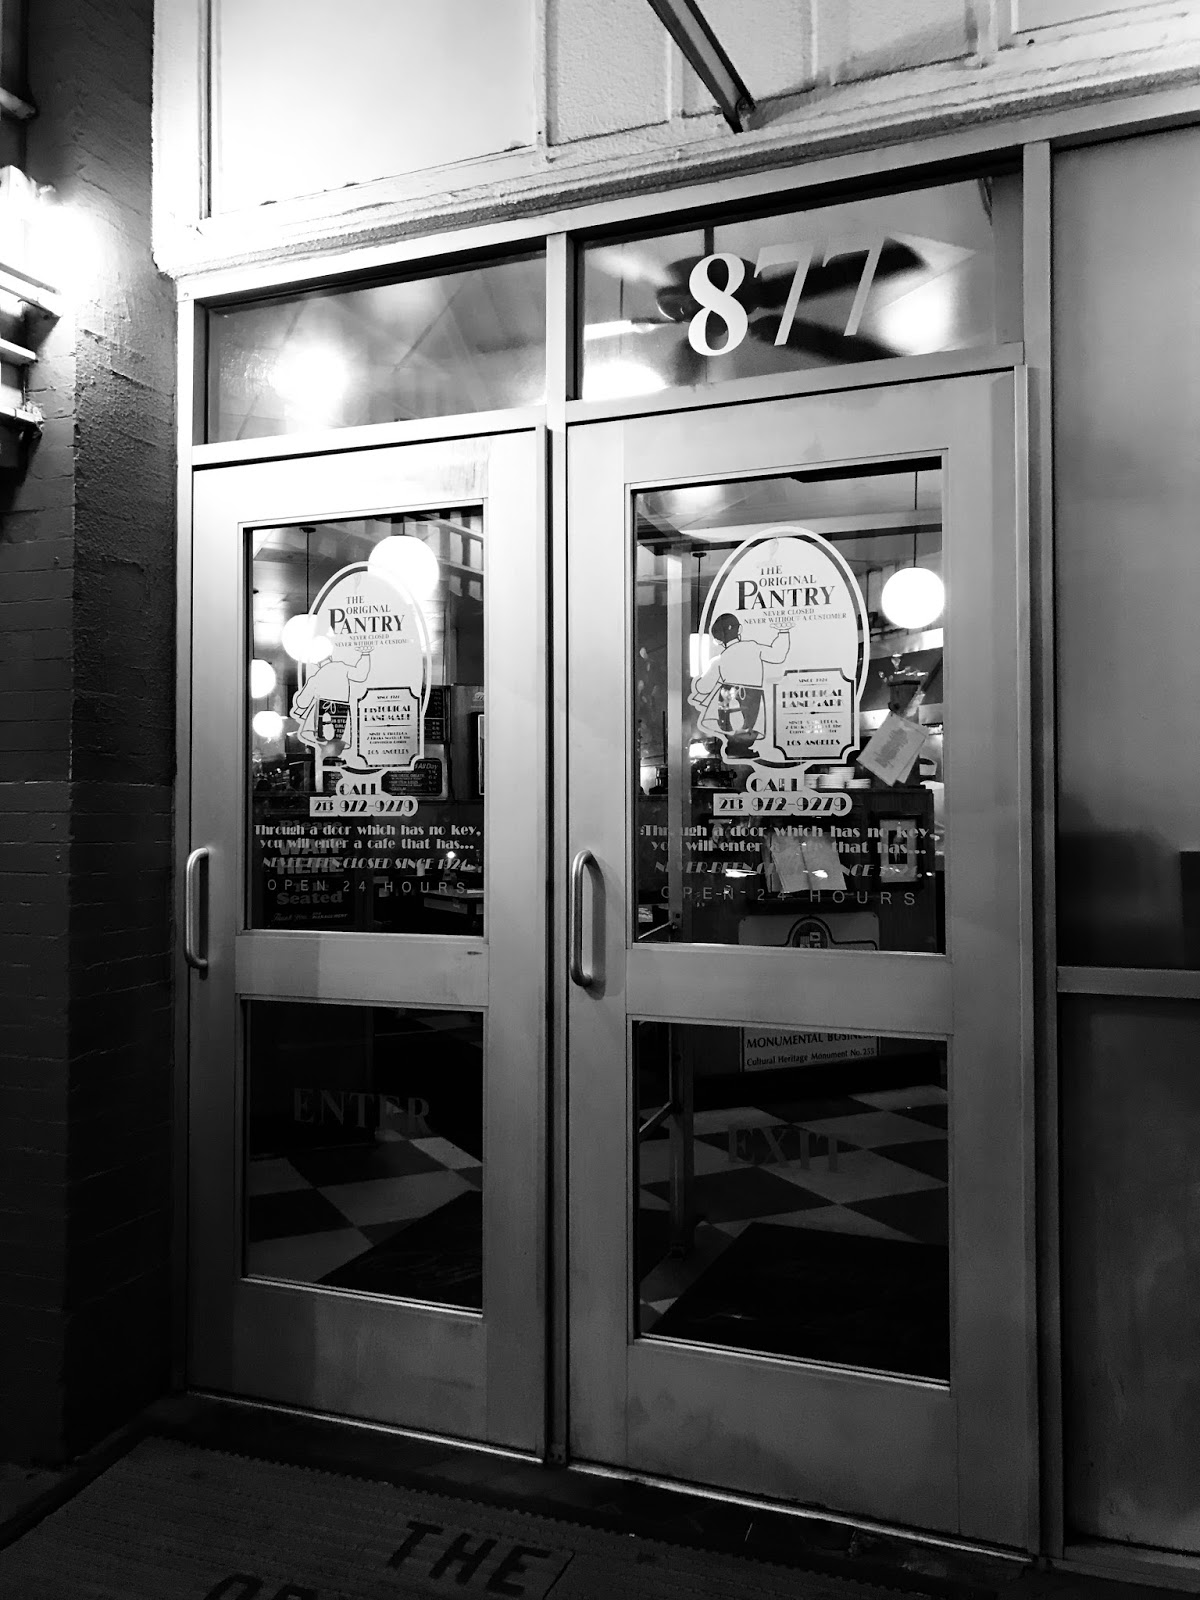 We Made The Drive From Vegas To L.A. In Time For Dinner. It Was A  Coincidence That Original Pantry Cafe (877 S Figueroa St, Los Angeles, CA  90017, ...